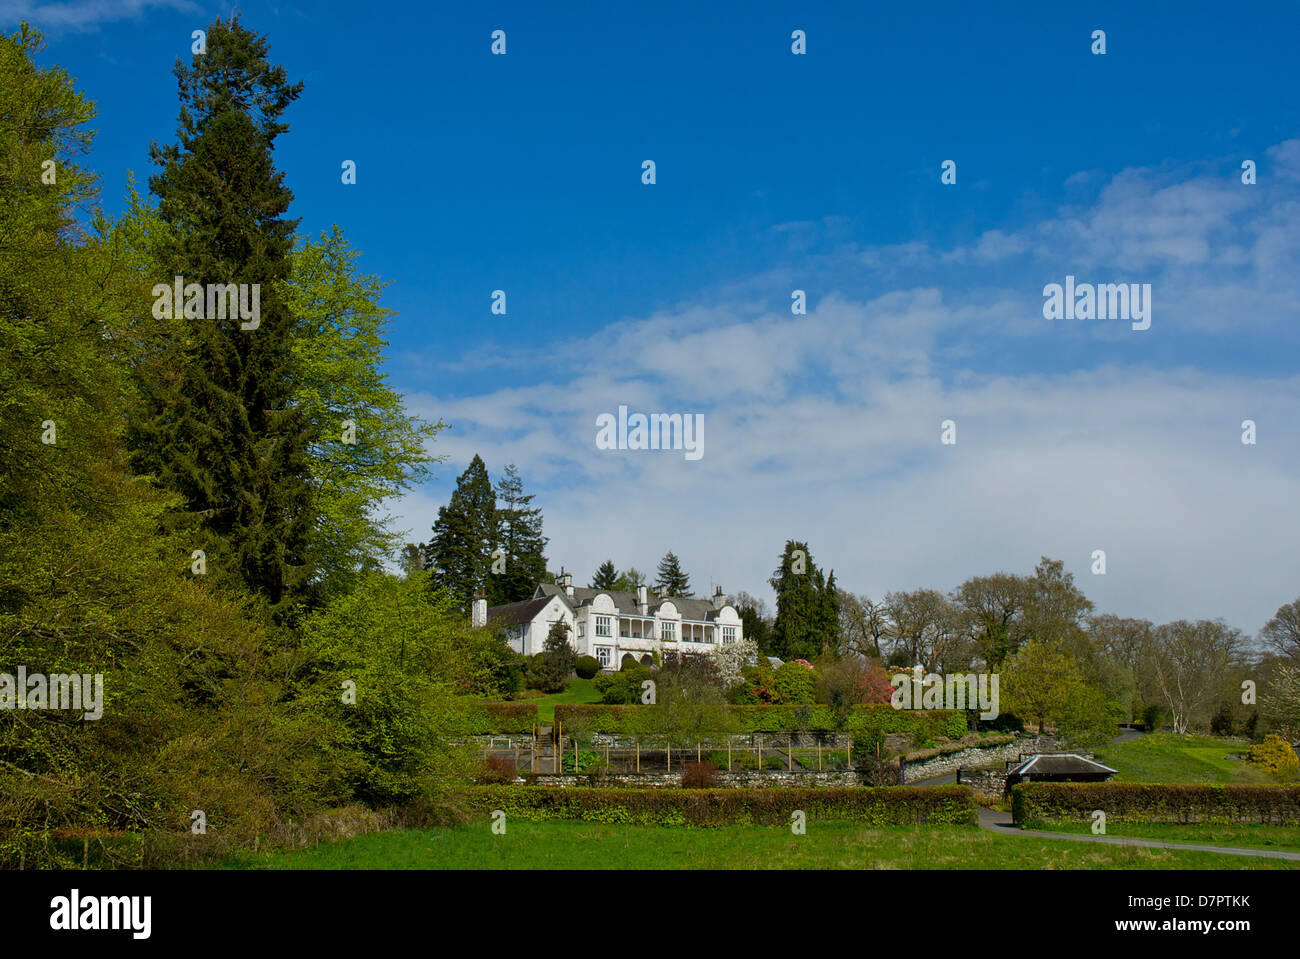 Brockhole, the visitor centre for the Lake District National Park, on the shores of Lake Windermere, Cumbria, England - Stock Image